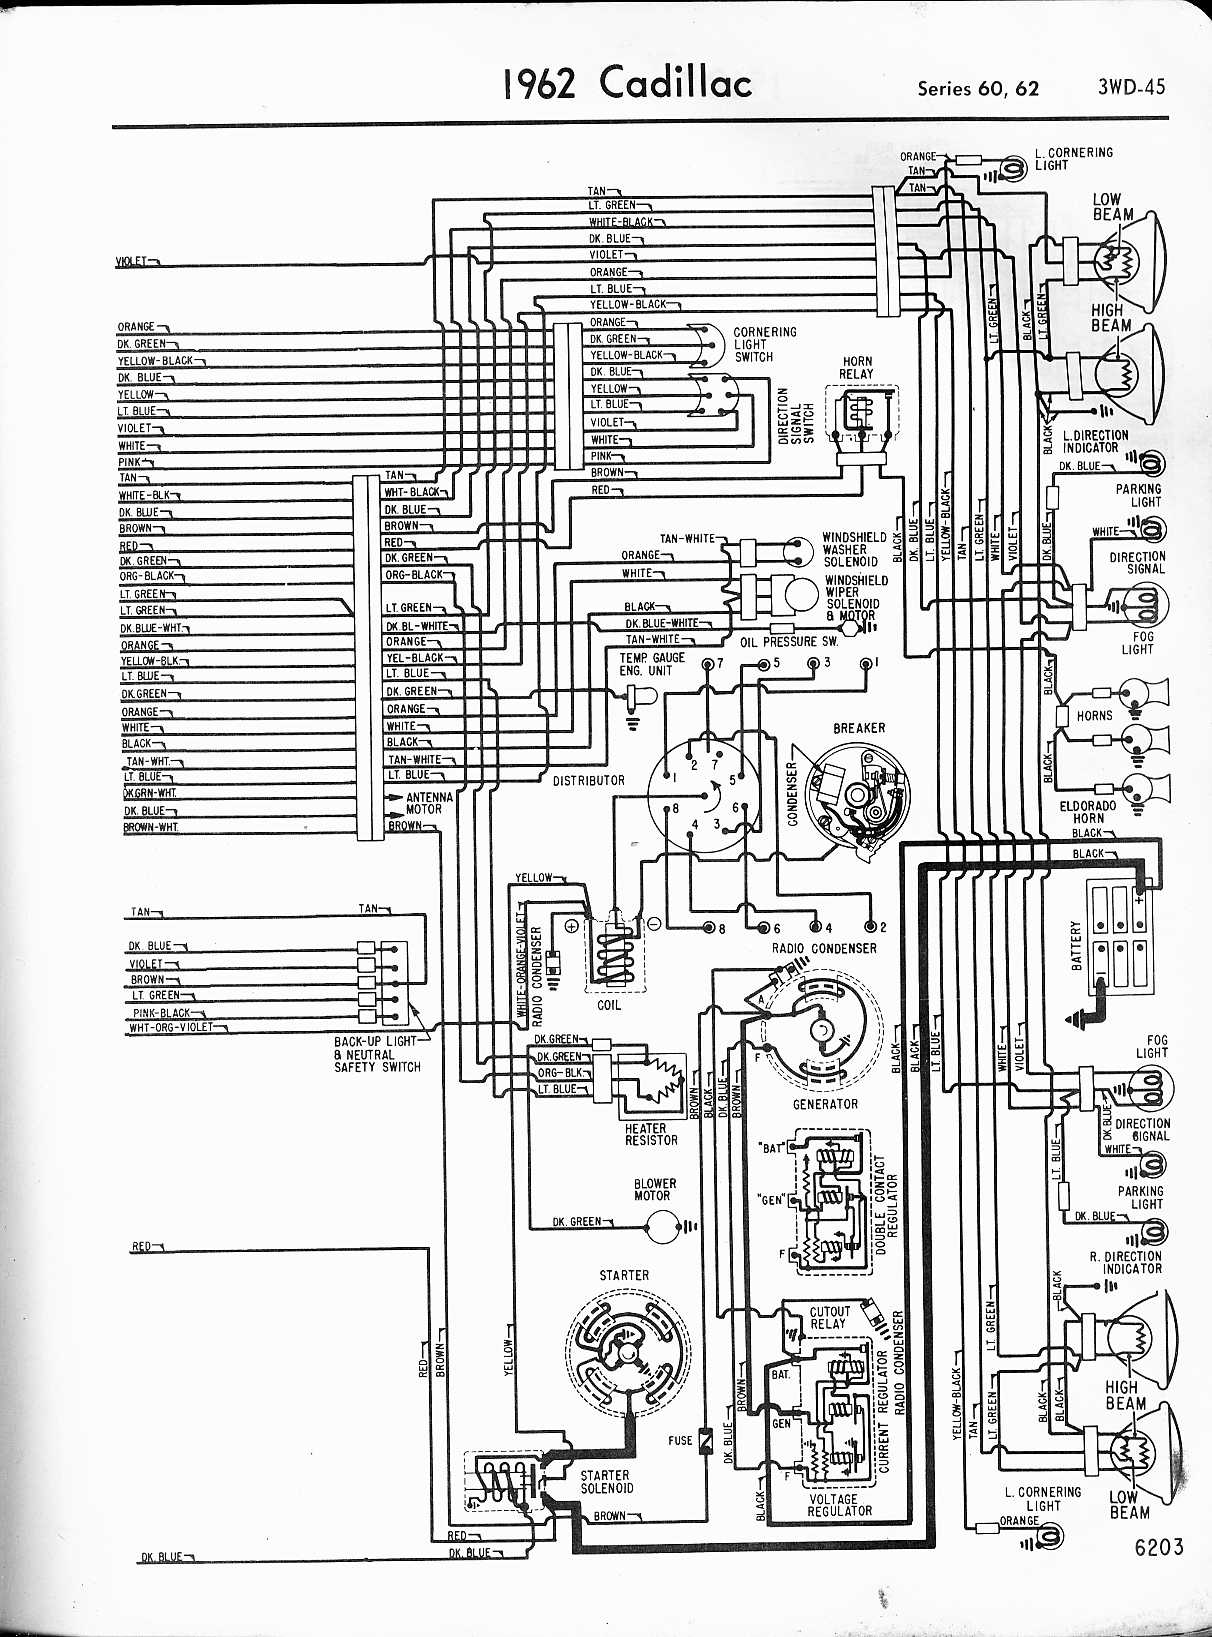 cadillac wiring diagrams 1957 1965 rh oldcarmanualproject com 1962 Cadillac Vacuum Diagram 1962 cadillac wiring diagram